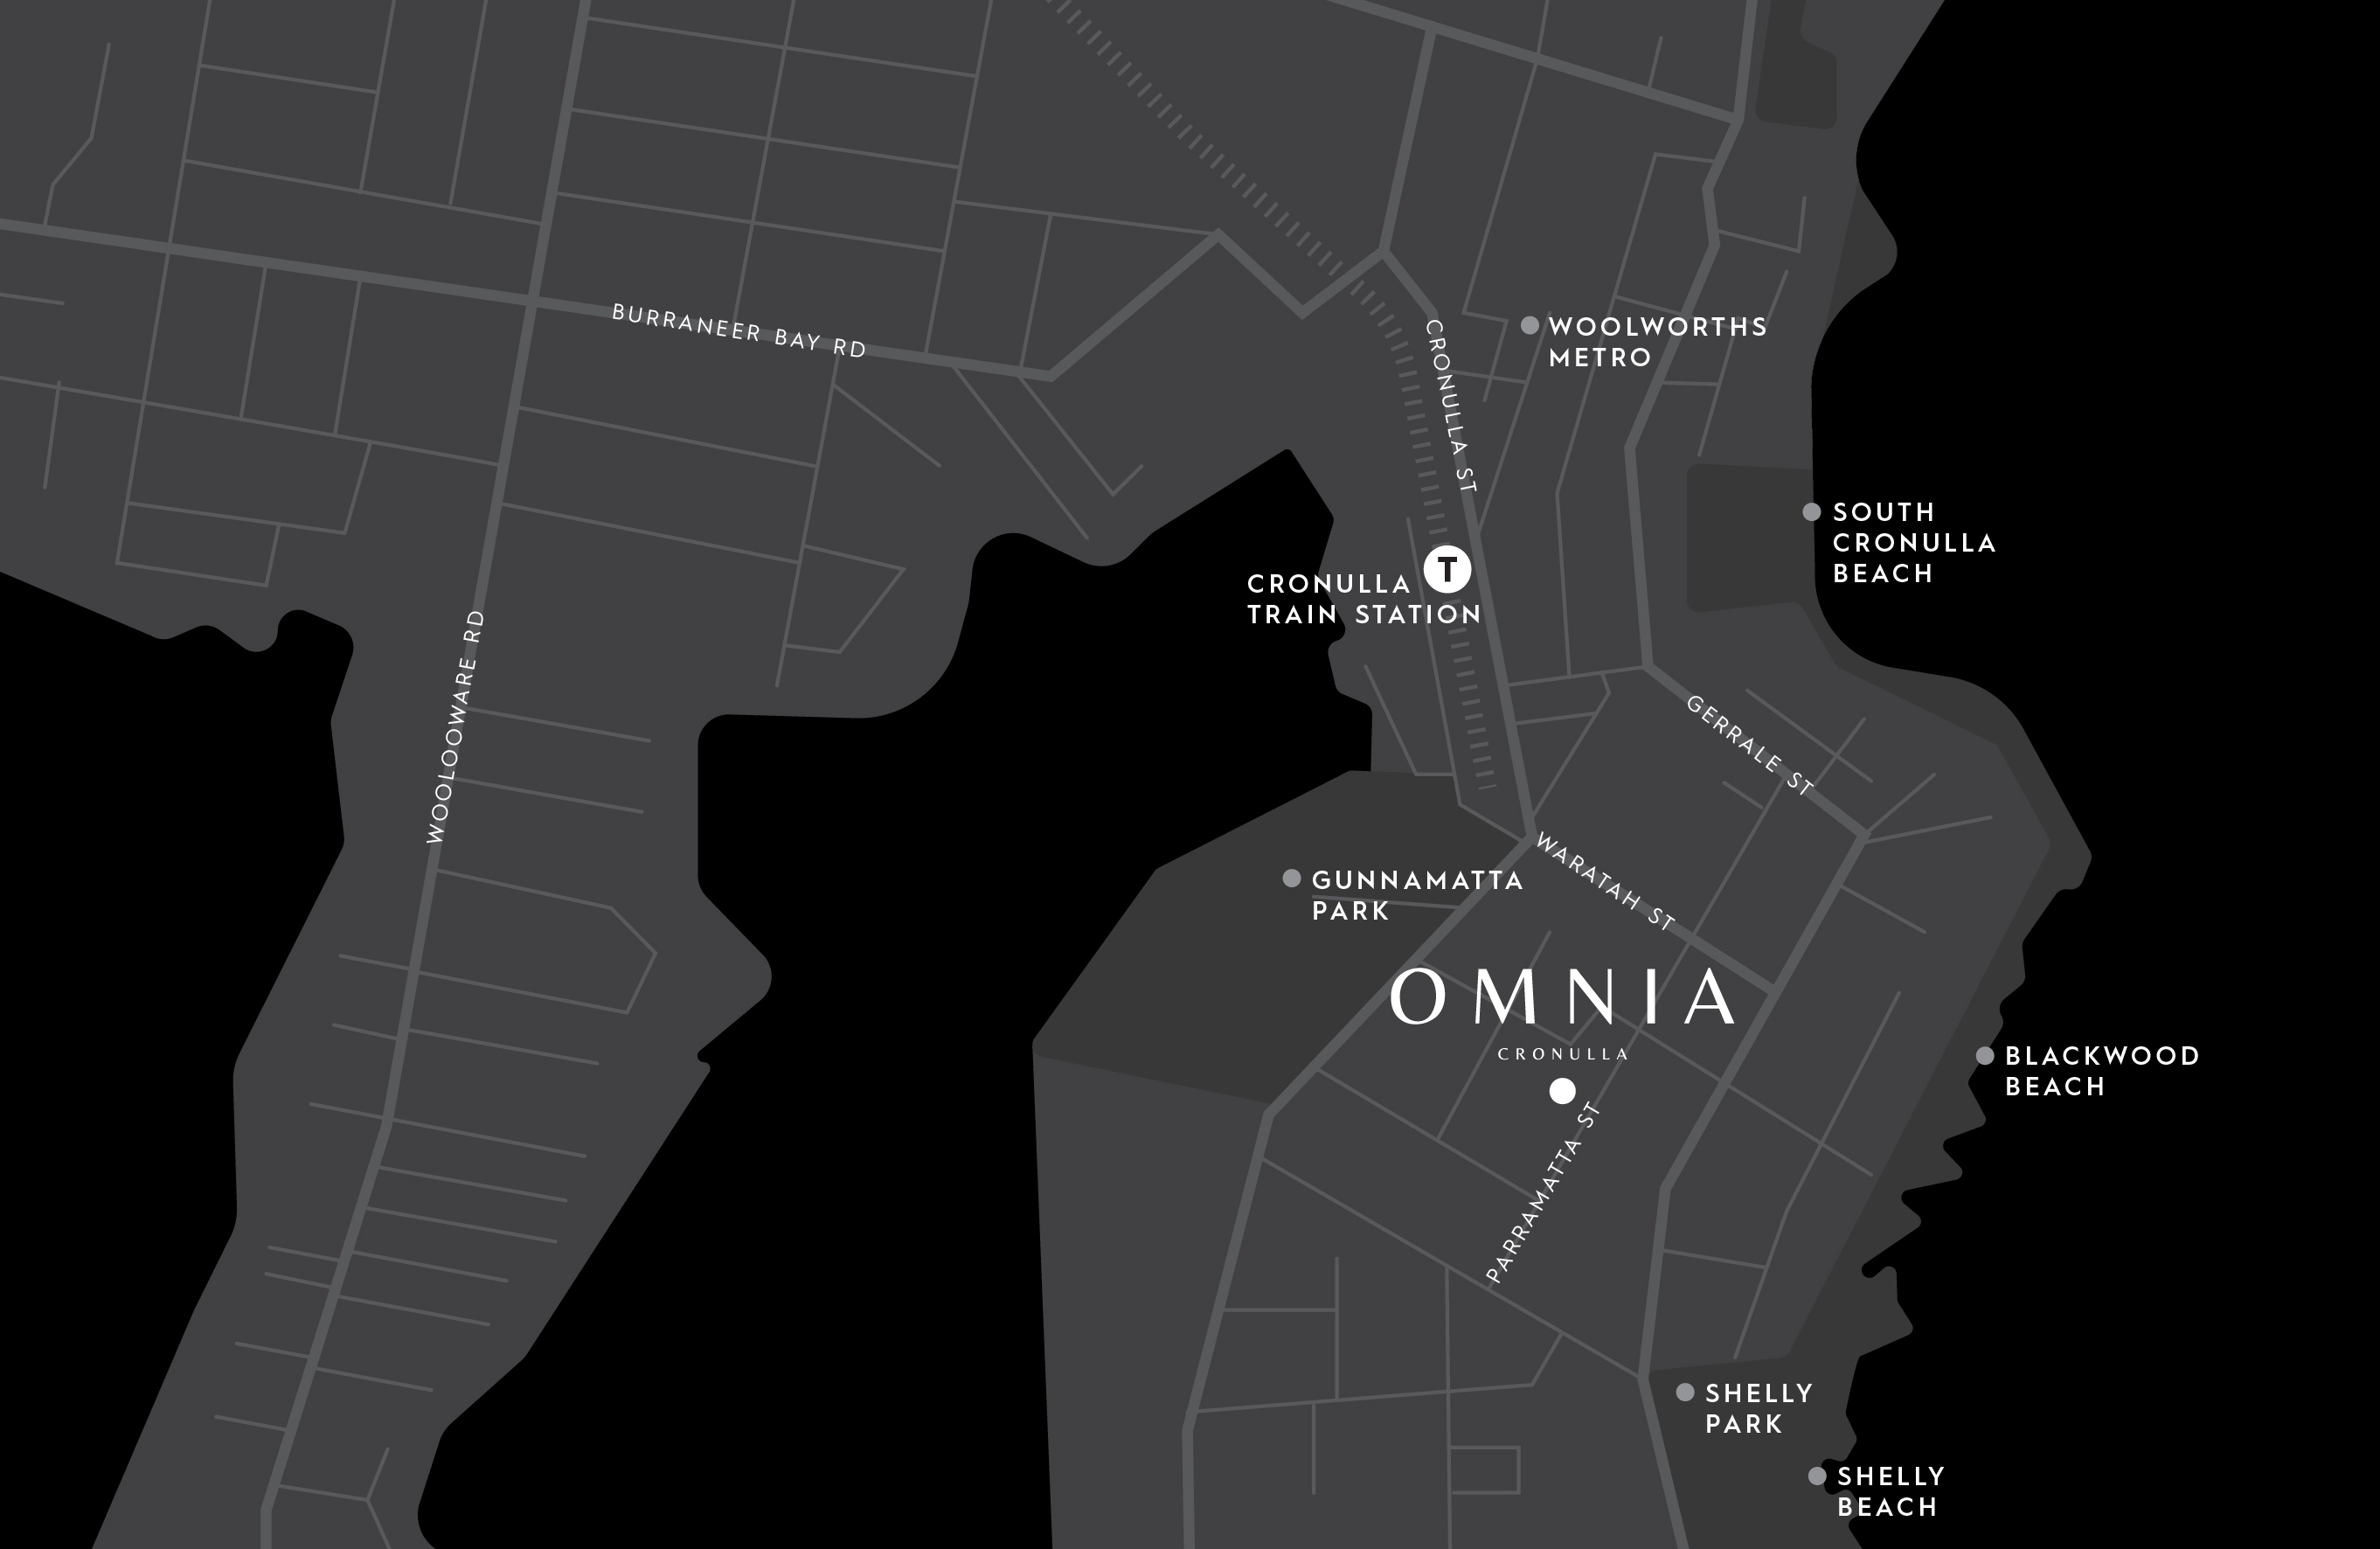 Map of the South Cronulla location of Omnia apartments